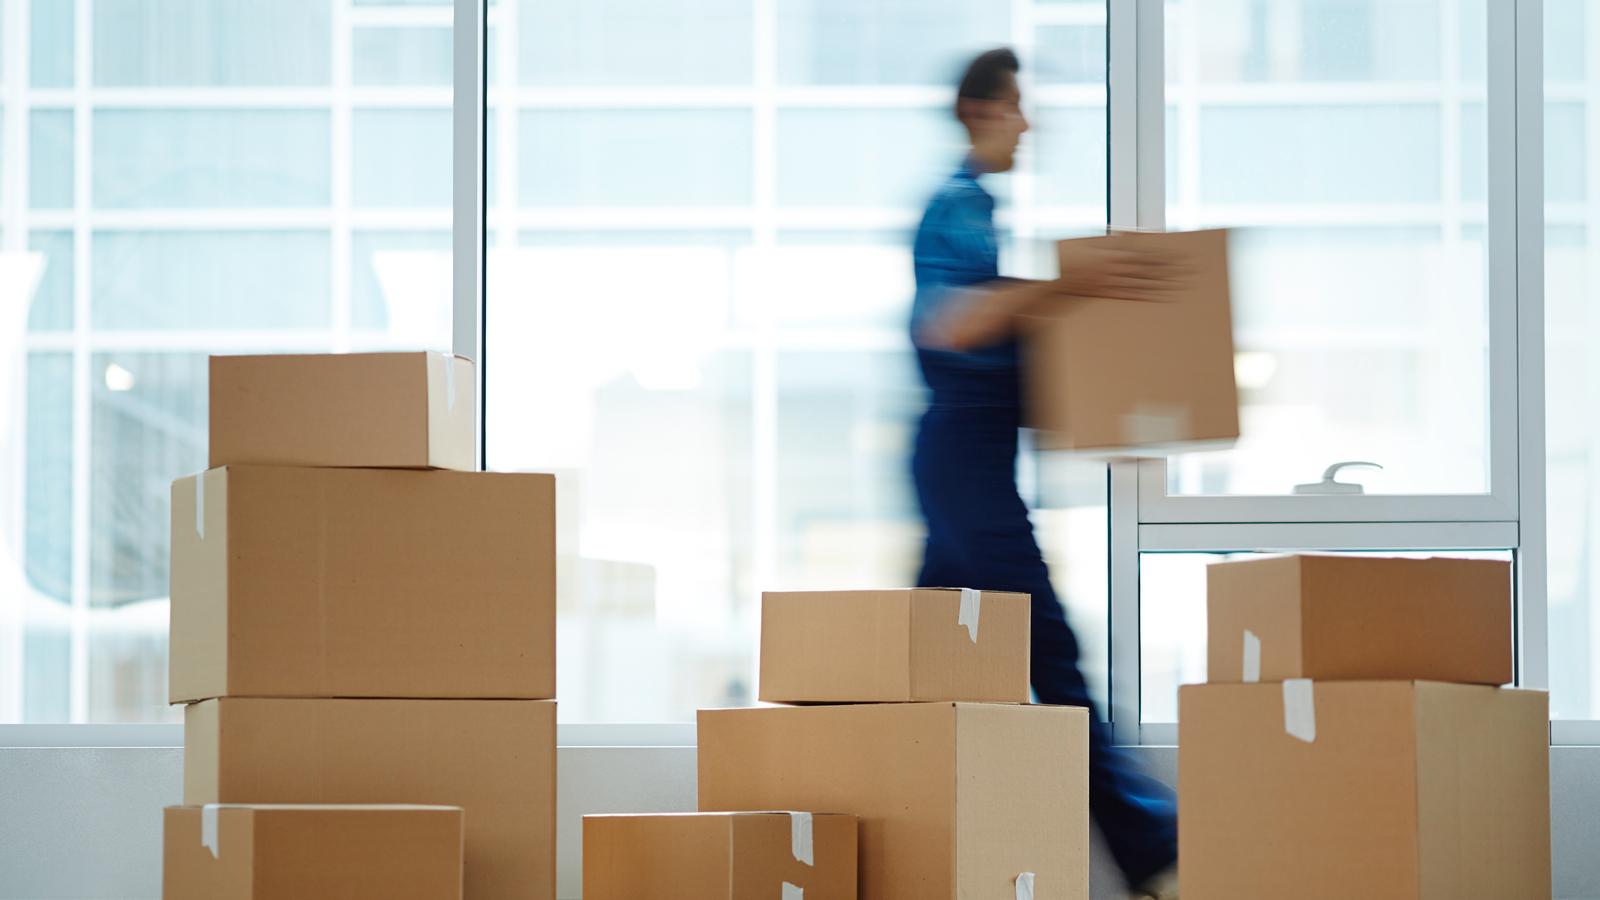 Blurred motion of contemporary worker with packed box walking to new office